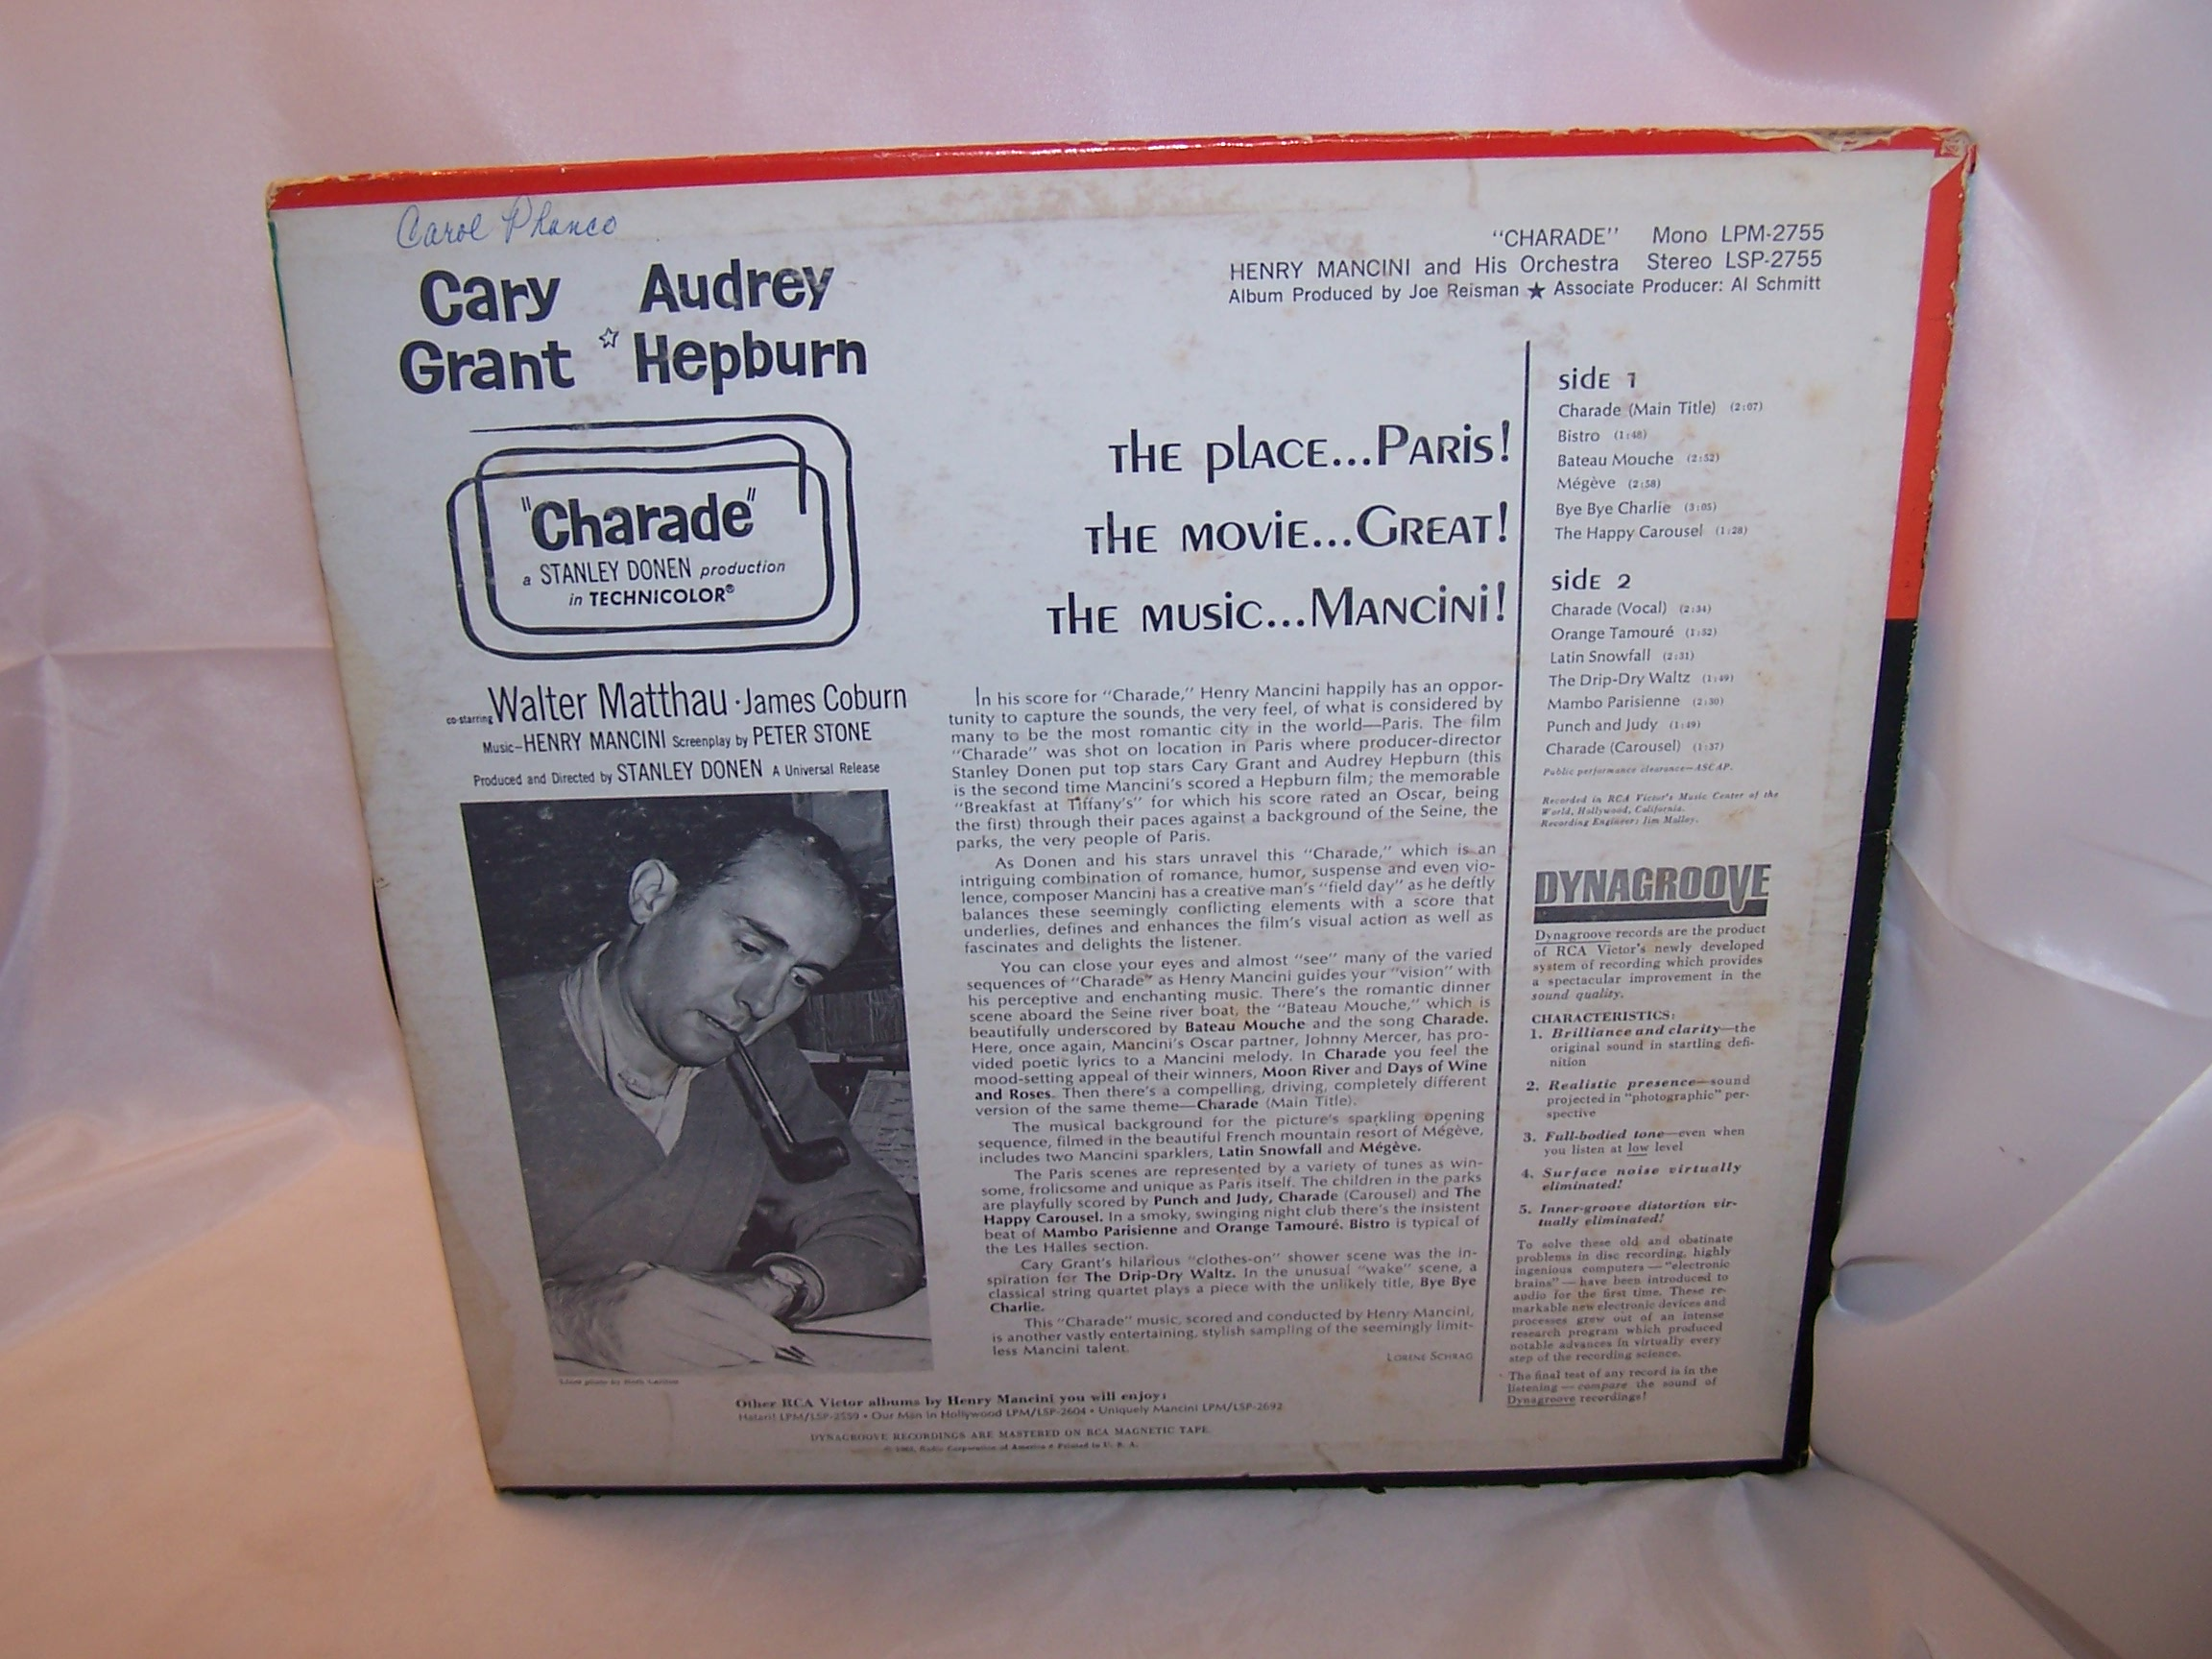 Image 1 of Henry Mancini, Charade, from the Movie Score, Cary Grant, Audrey Hepburn, 1963